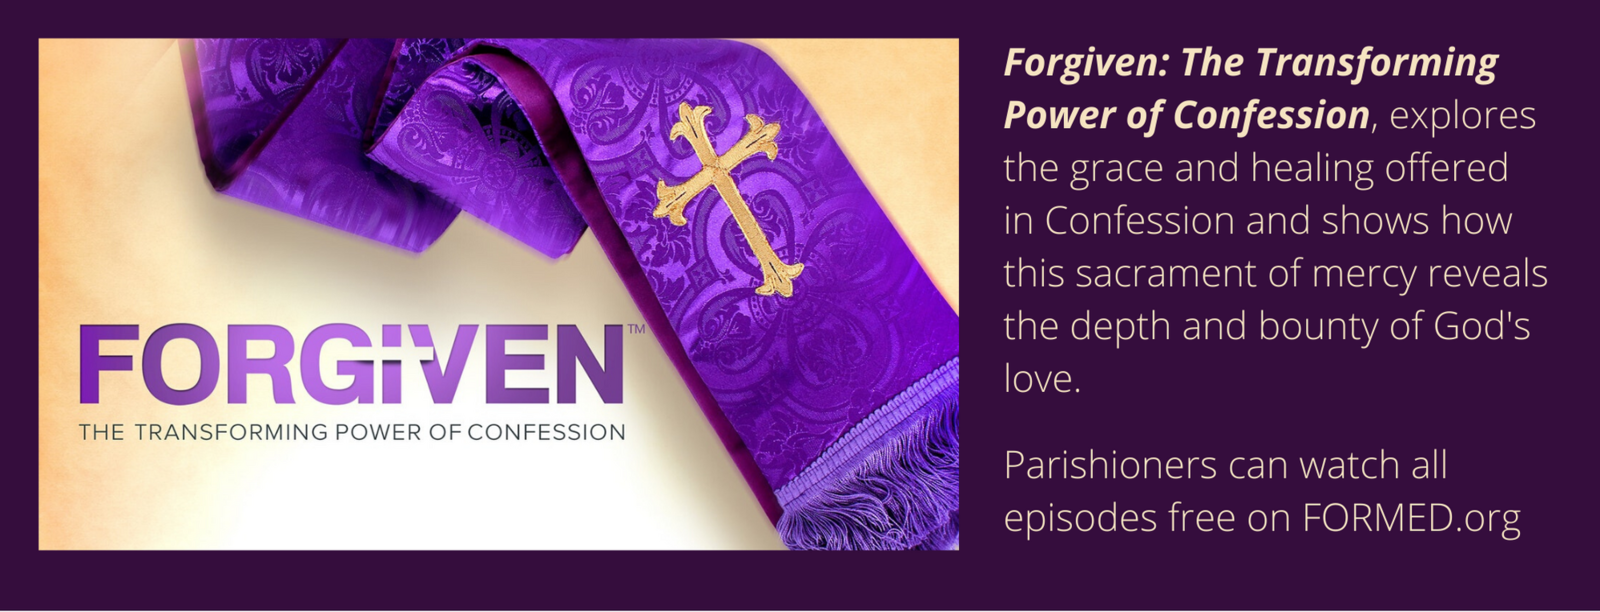 Forgiven The Transforming Power Of Confession Explores The Grace And Healing Offered In Confession And Shows How This Sacrament Of Mercy Reveals The Depth And Bounty Of Gods Love